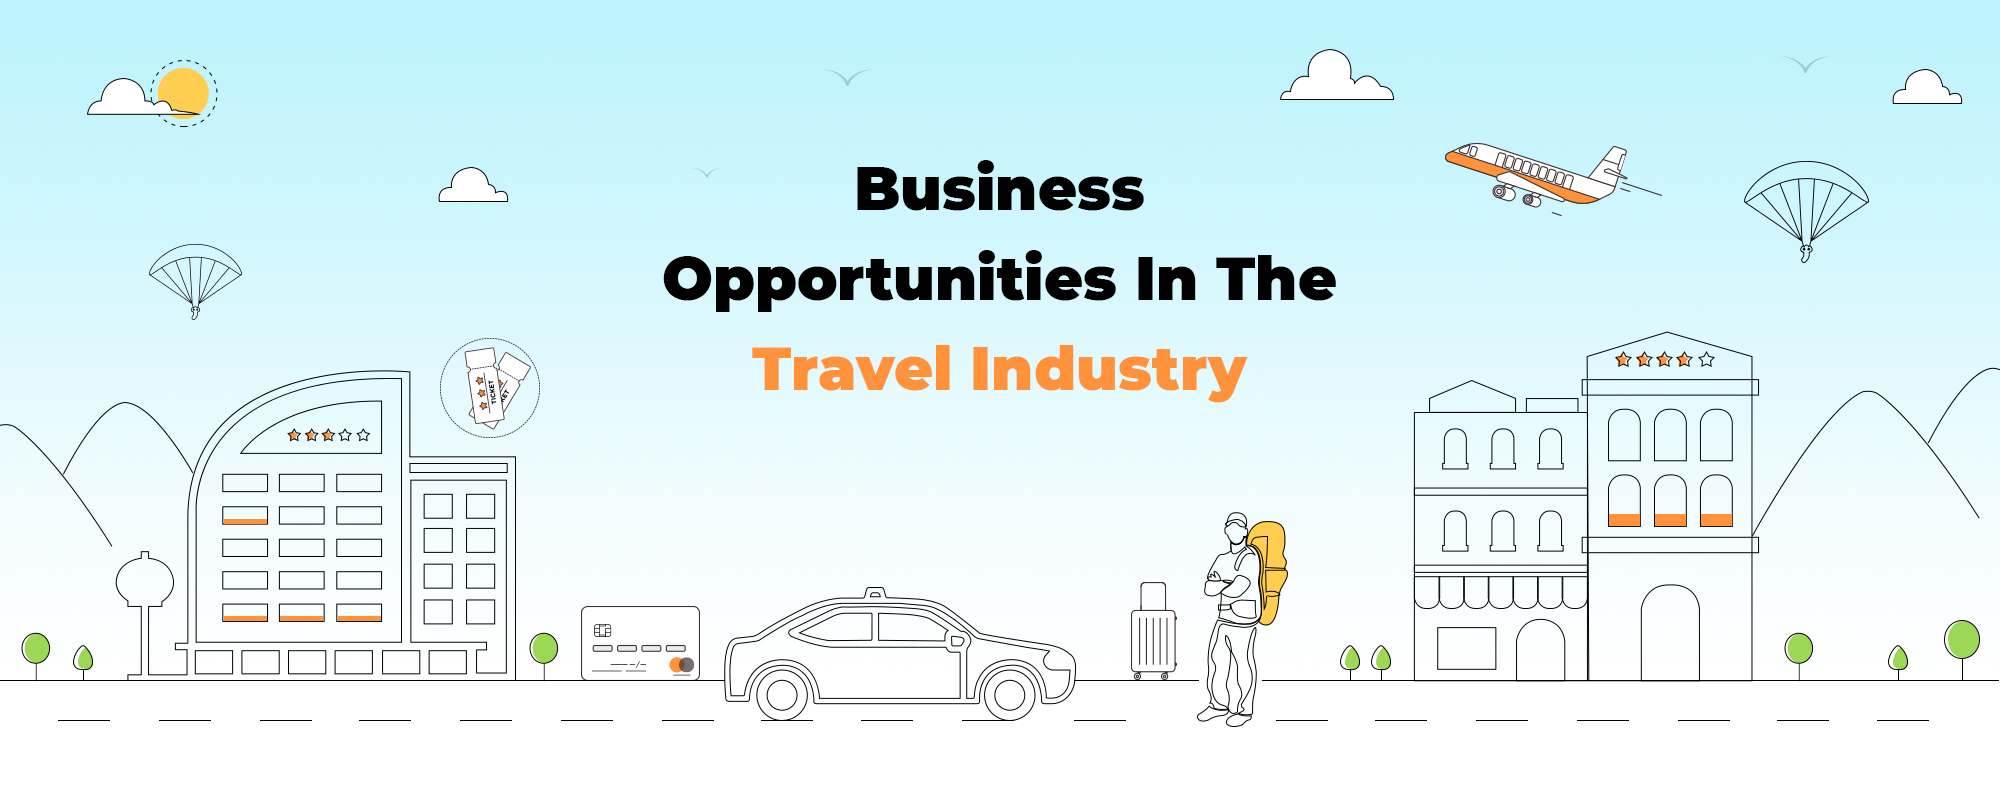 Popular Business Opportunities in the Tourism Industry